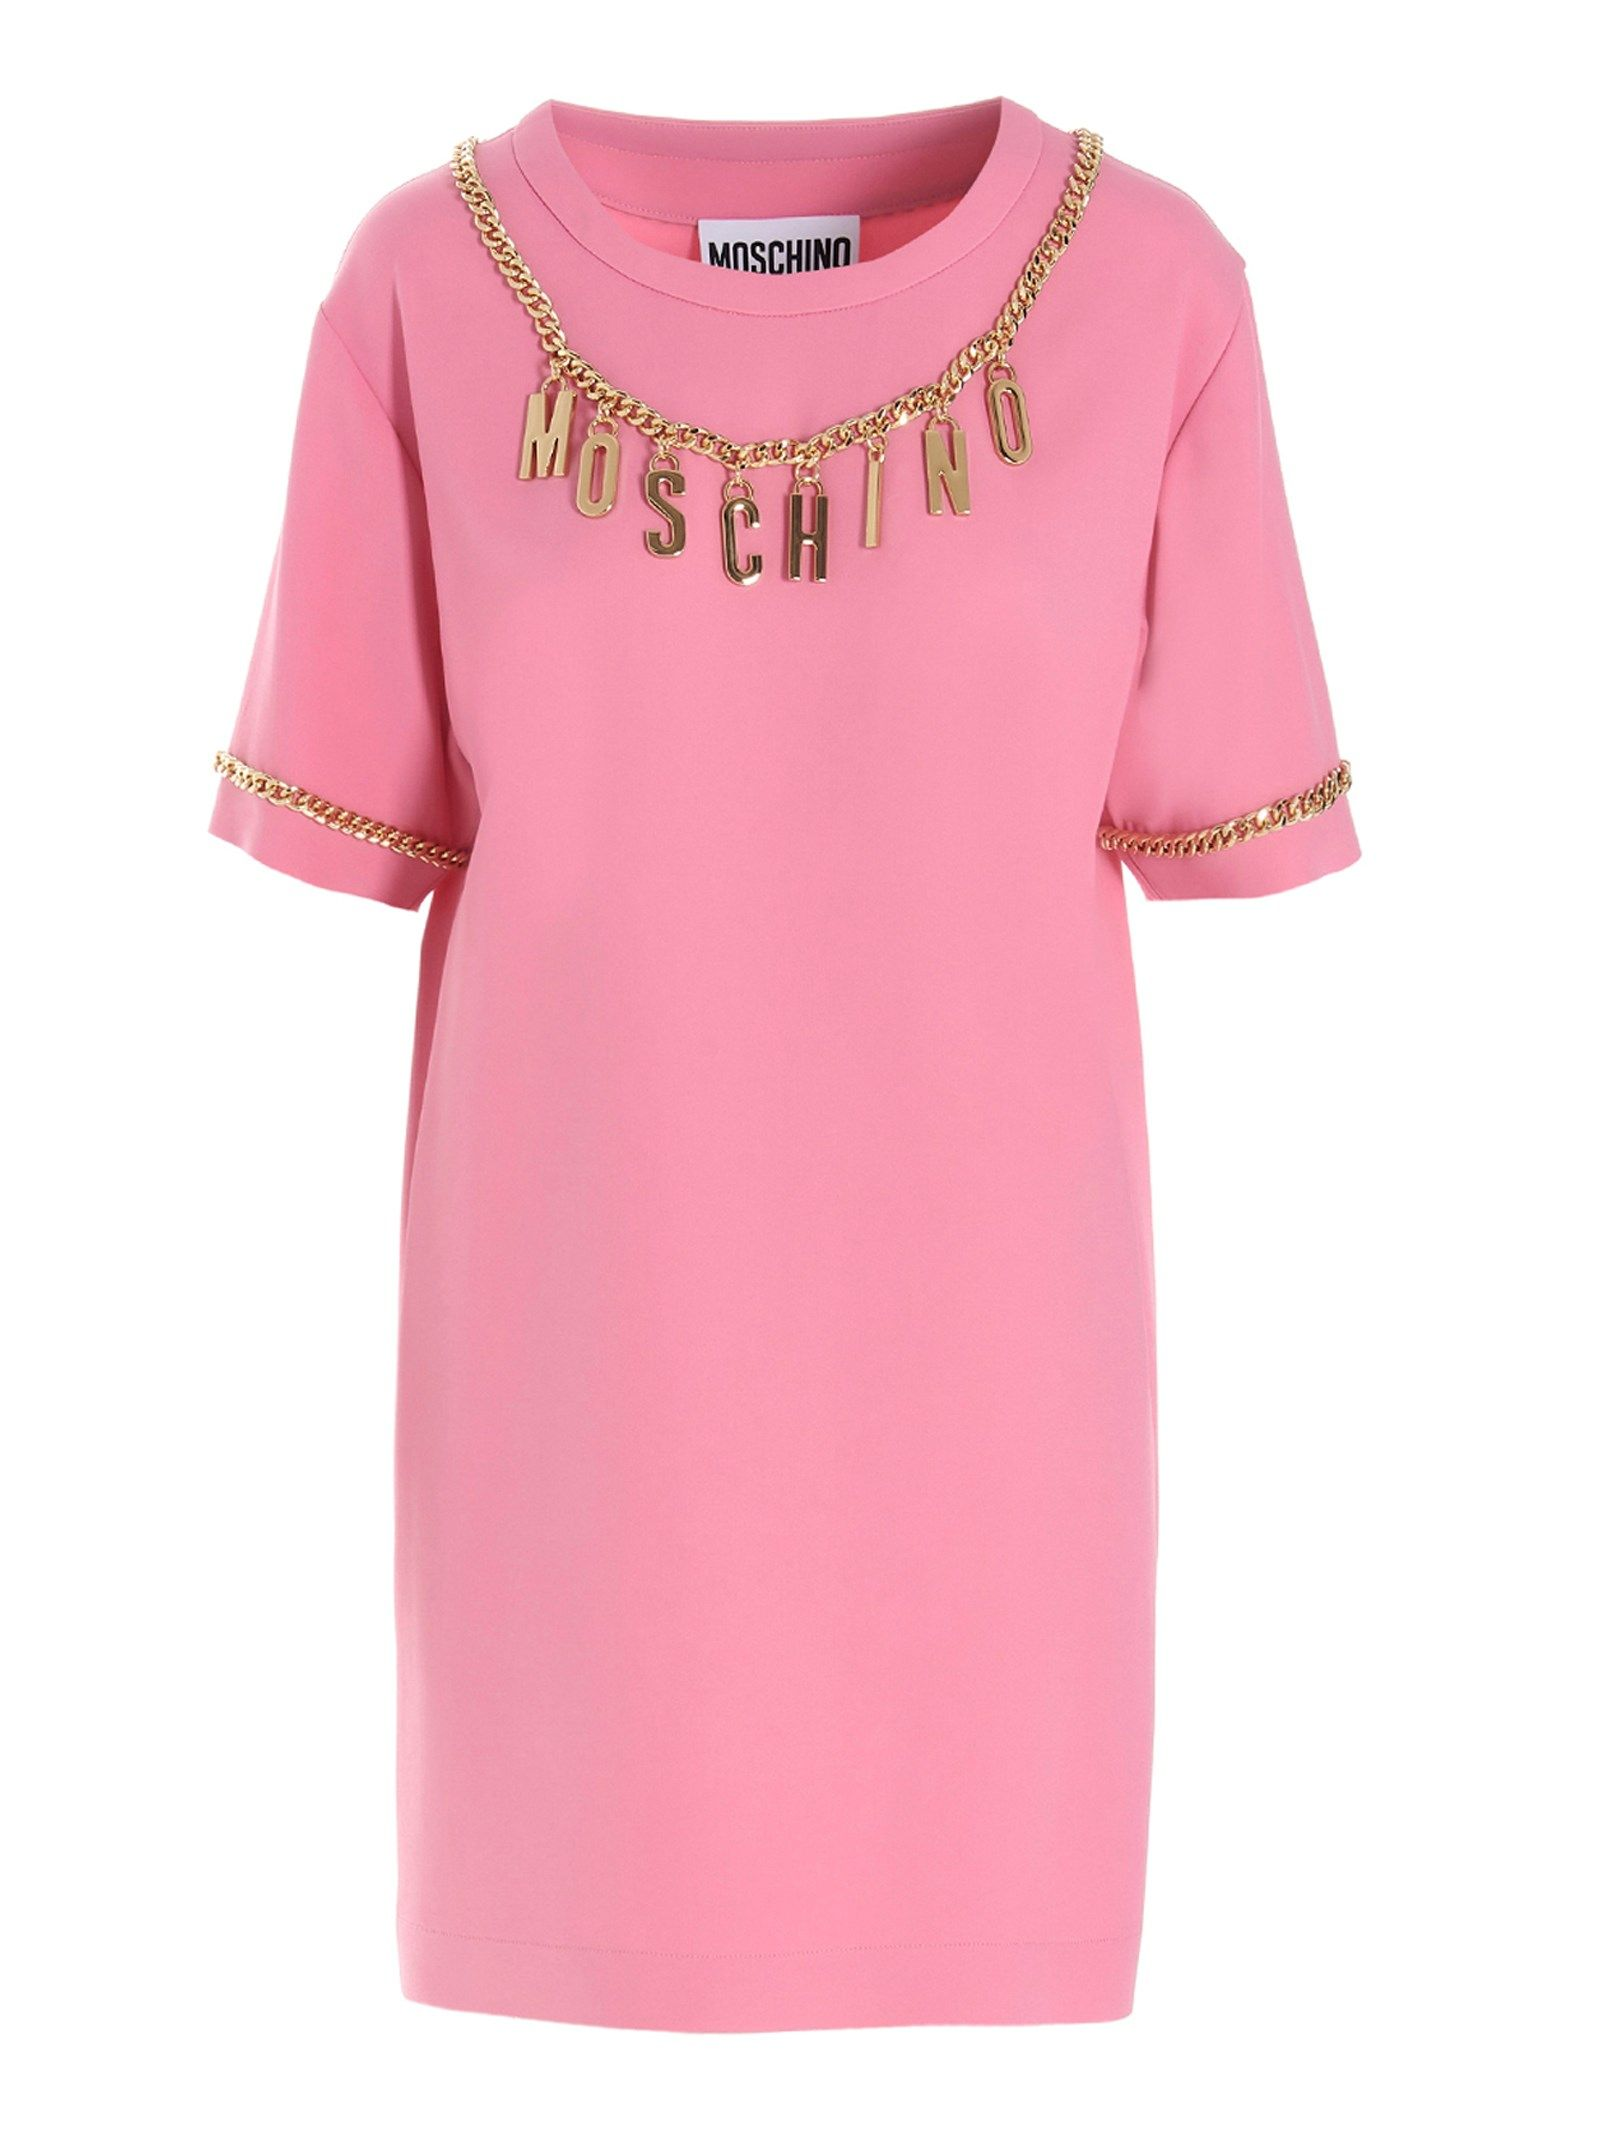 Moschino MOSCHINO WOMEN'S PINK OTHER MATERIALS DRESS